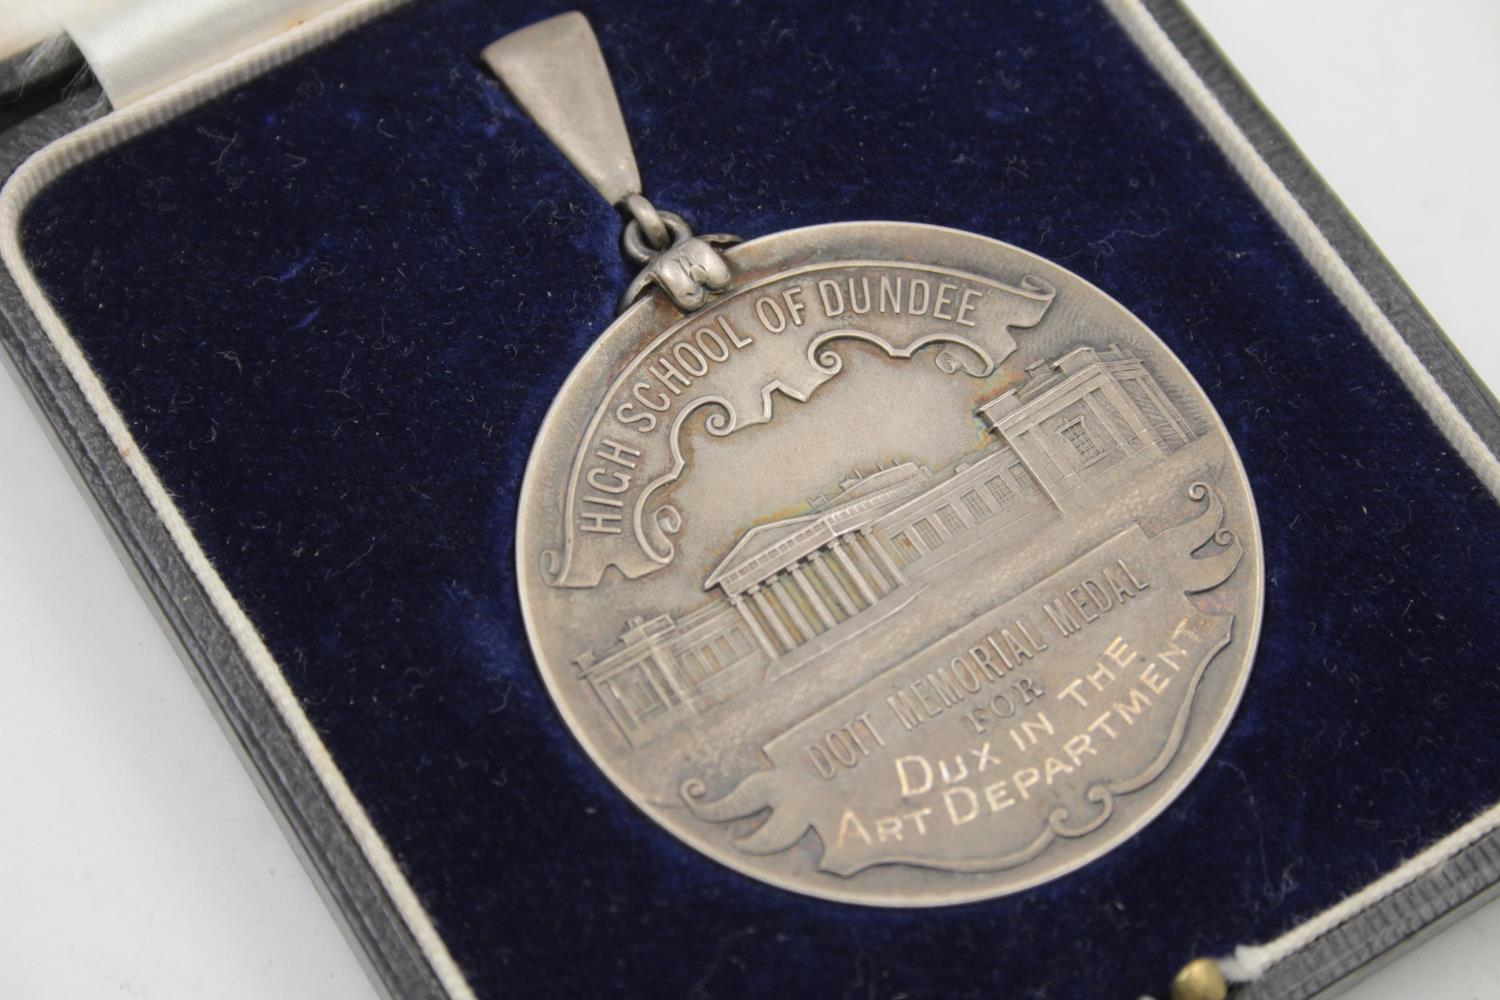 Vintage .925 STERLING SILVER Dundee High School Dott Memorial Medal Boxed (57g) - Image 2 of 5